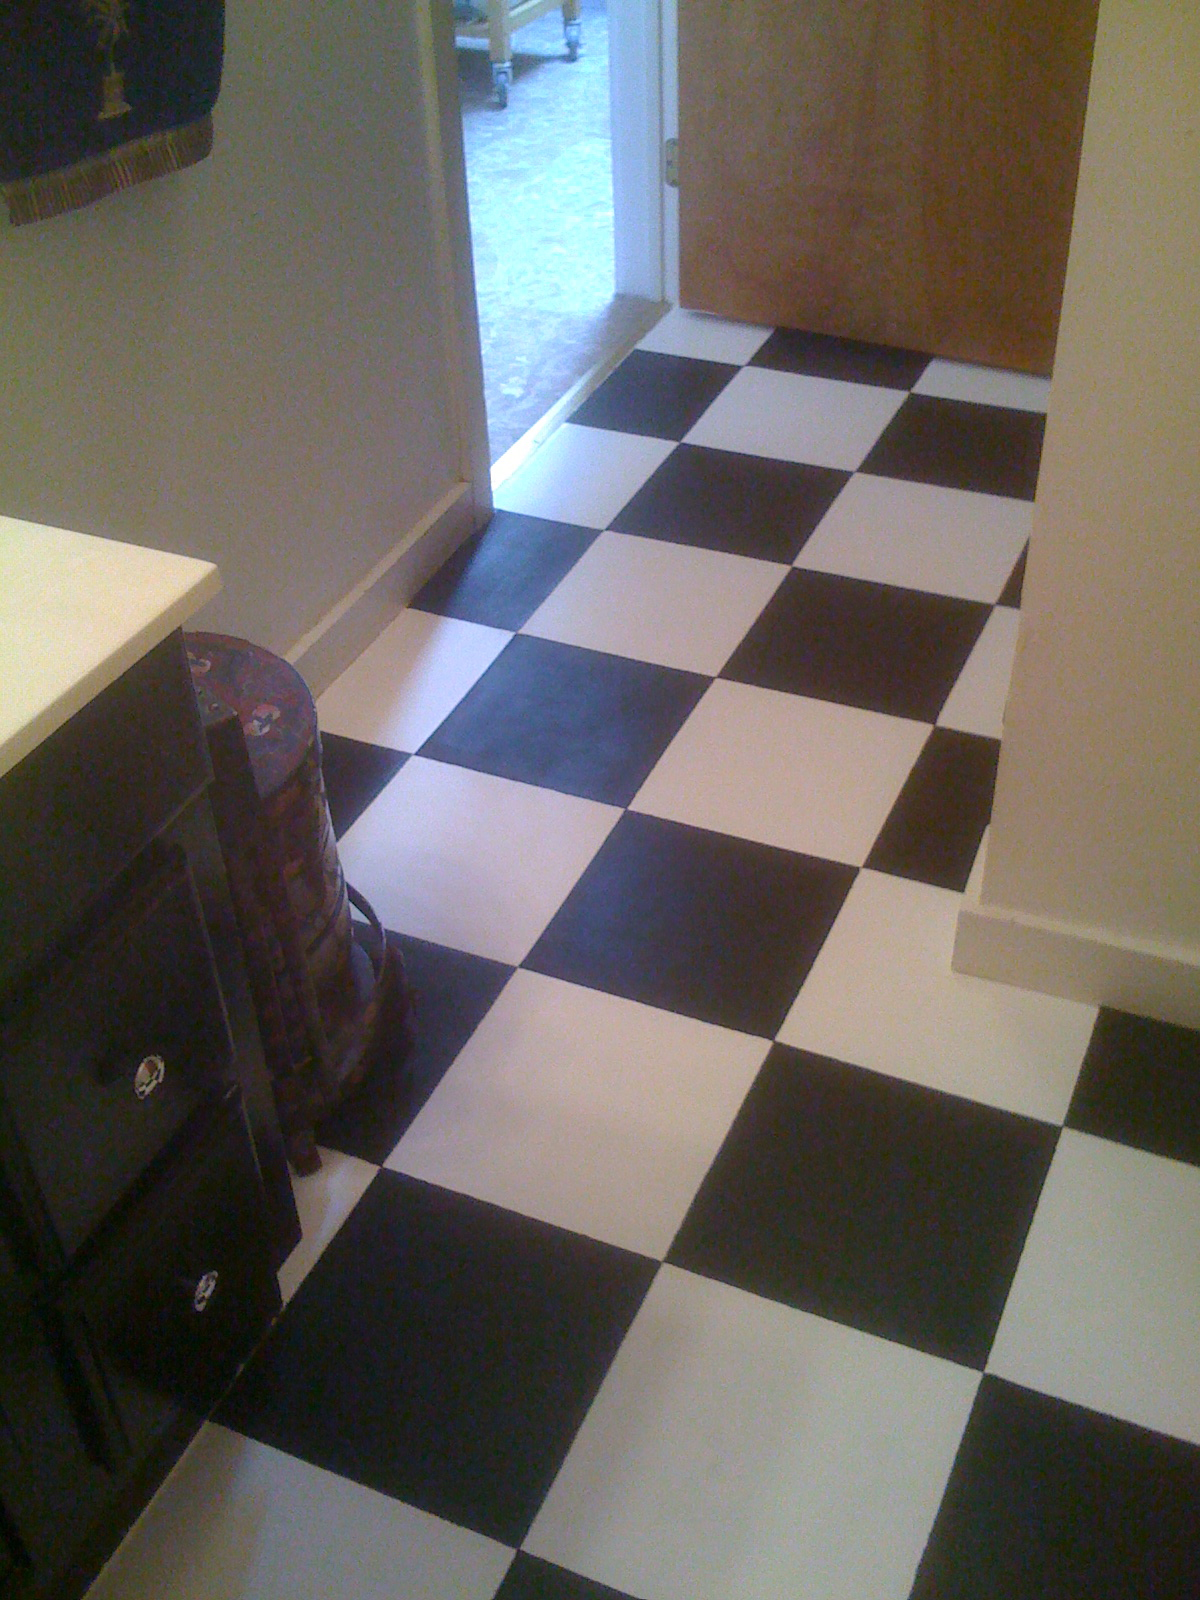 Diy Paint Bathroom Tile Floor : Diy painting old vinyl floor tiles mary wiseman designs